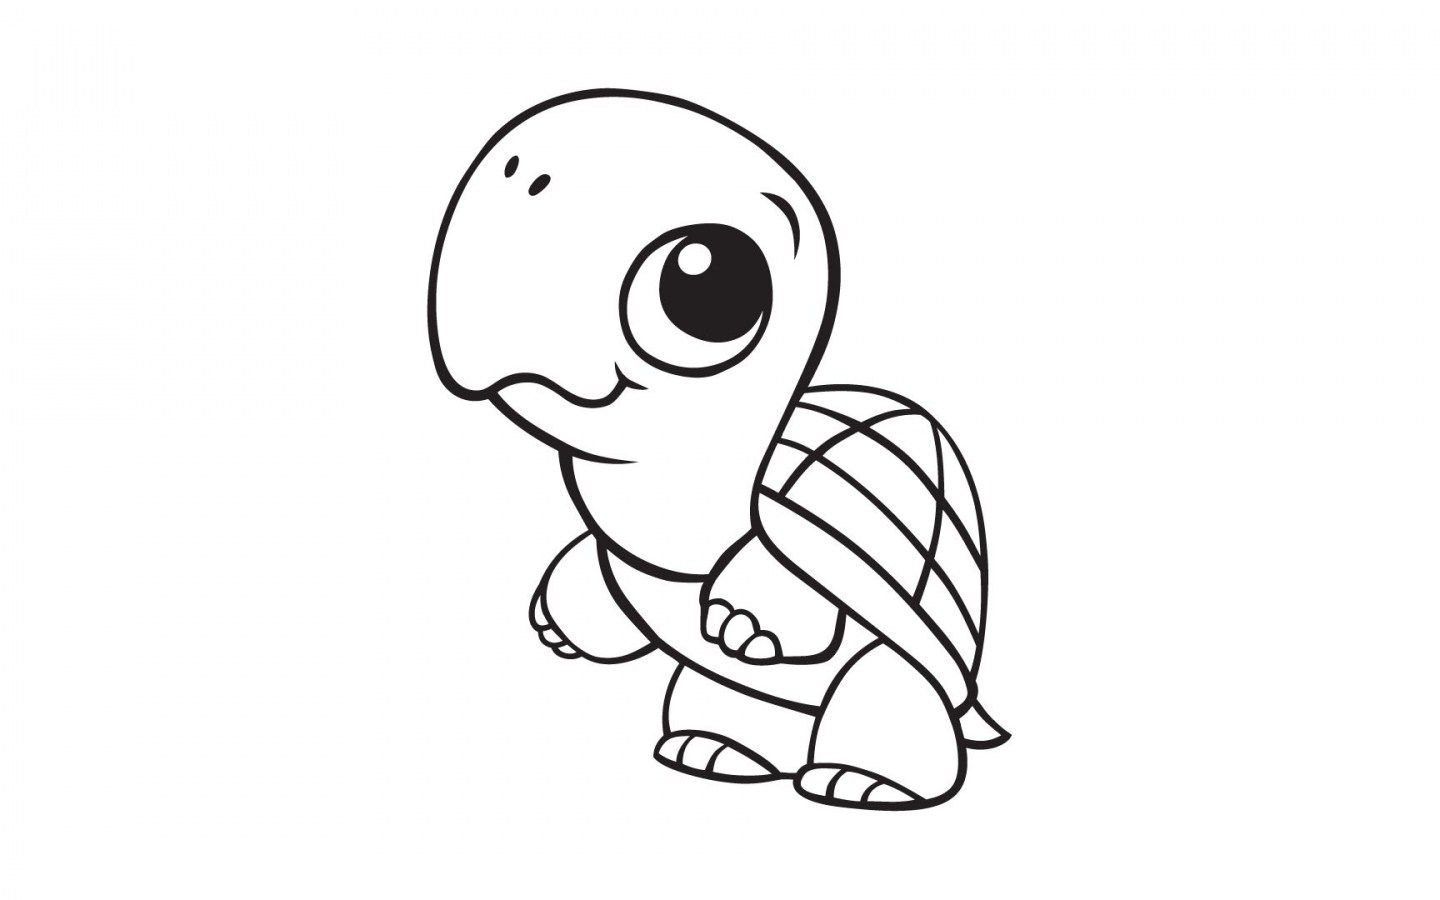 Animal coloring pages you can download and print cute baby animal